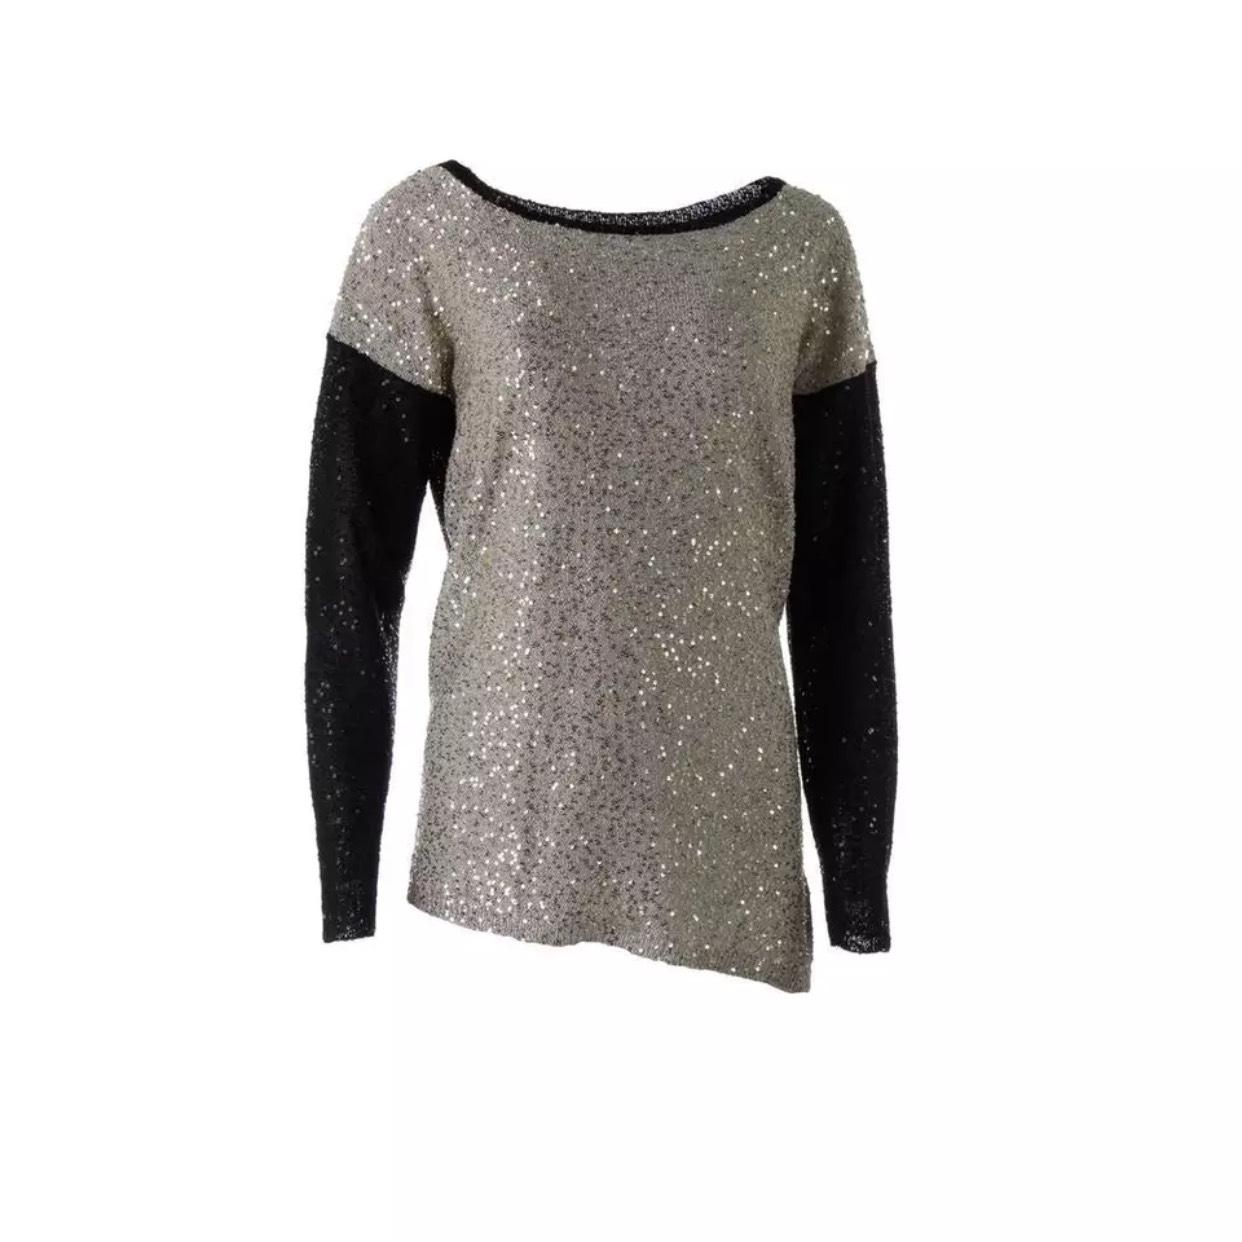 Brand New Unisex For Sale Dkny Woman Printed Stretch-knit Sweater Black Size XXS DKNY Buy Cheap Limited Edition Best Place Cheap Online Discount Eastbay Sale Low Shipping Fee eUzLkIbS